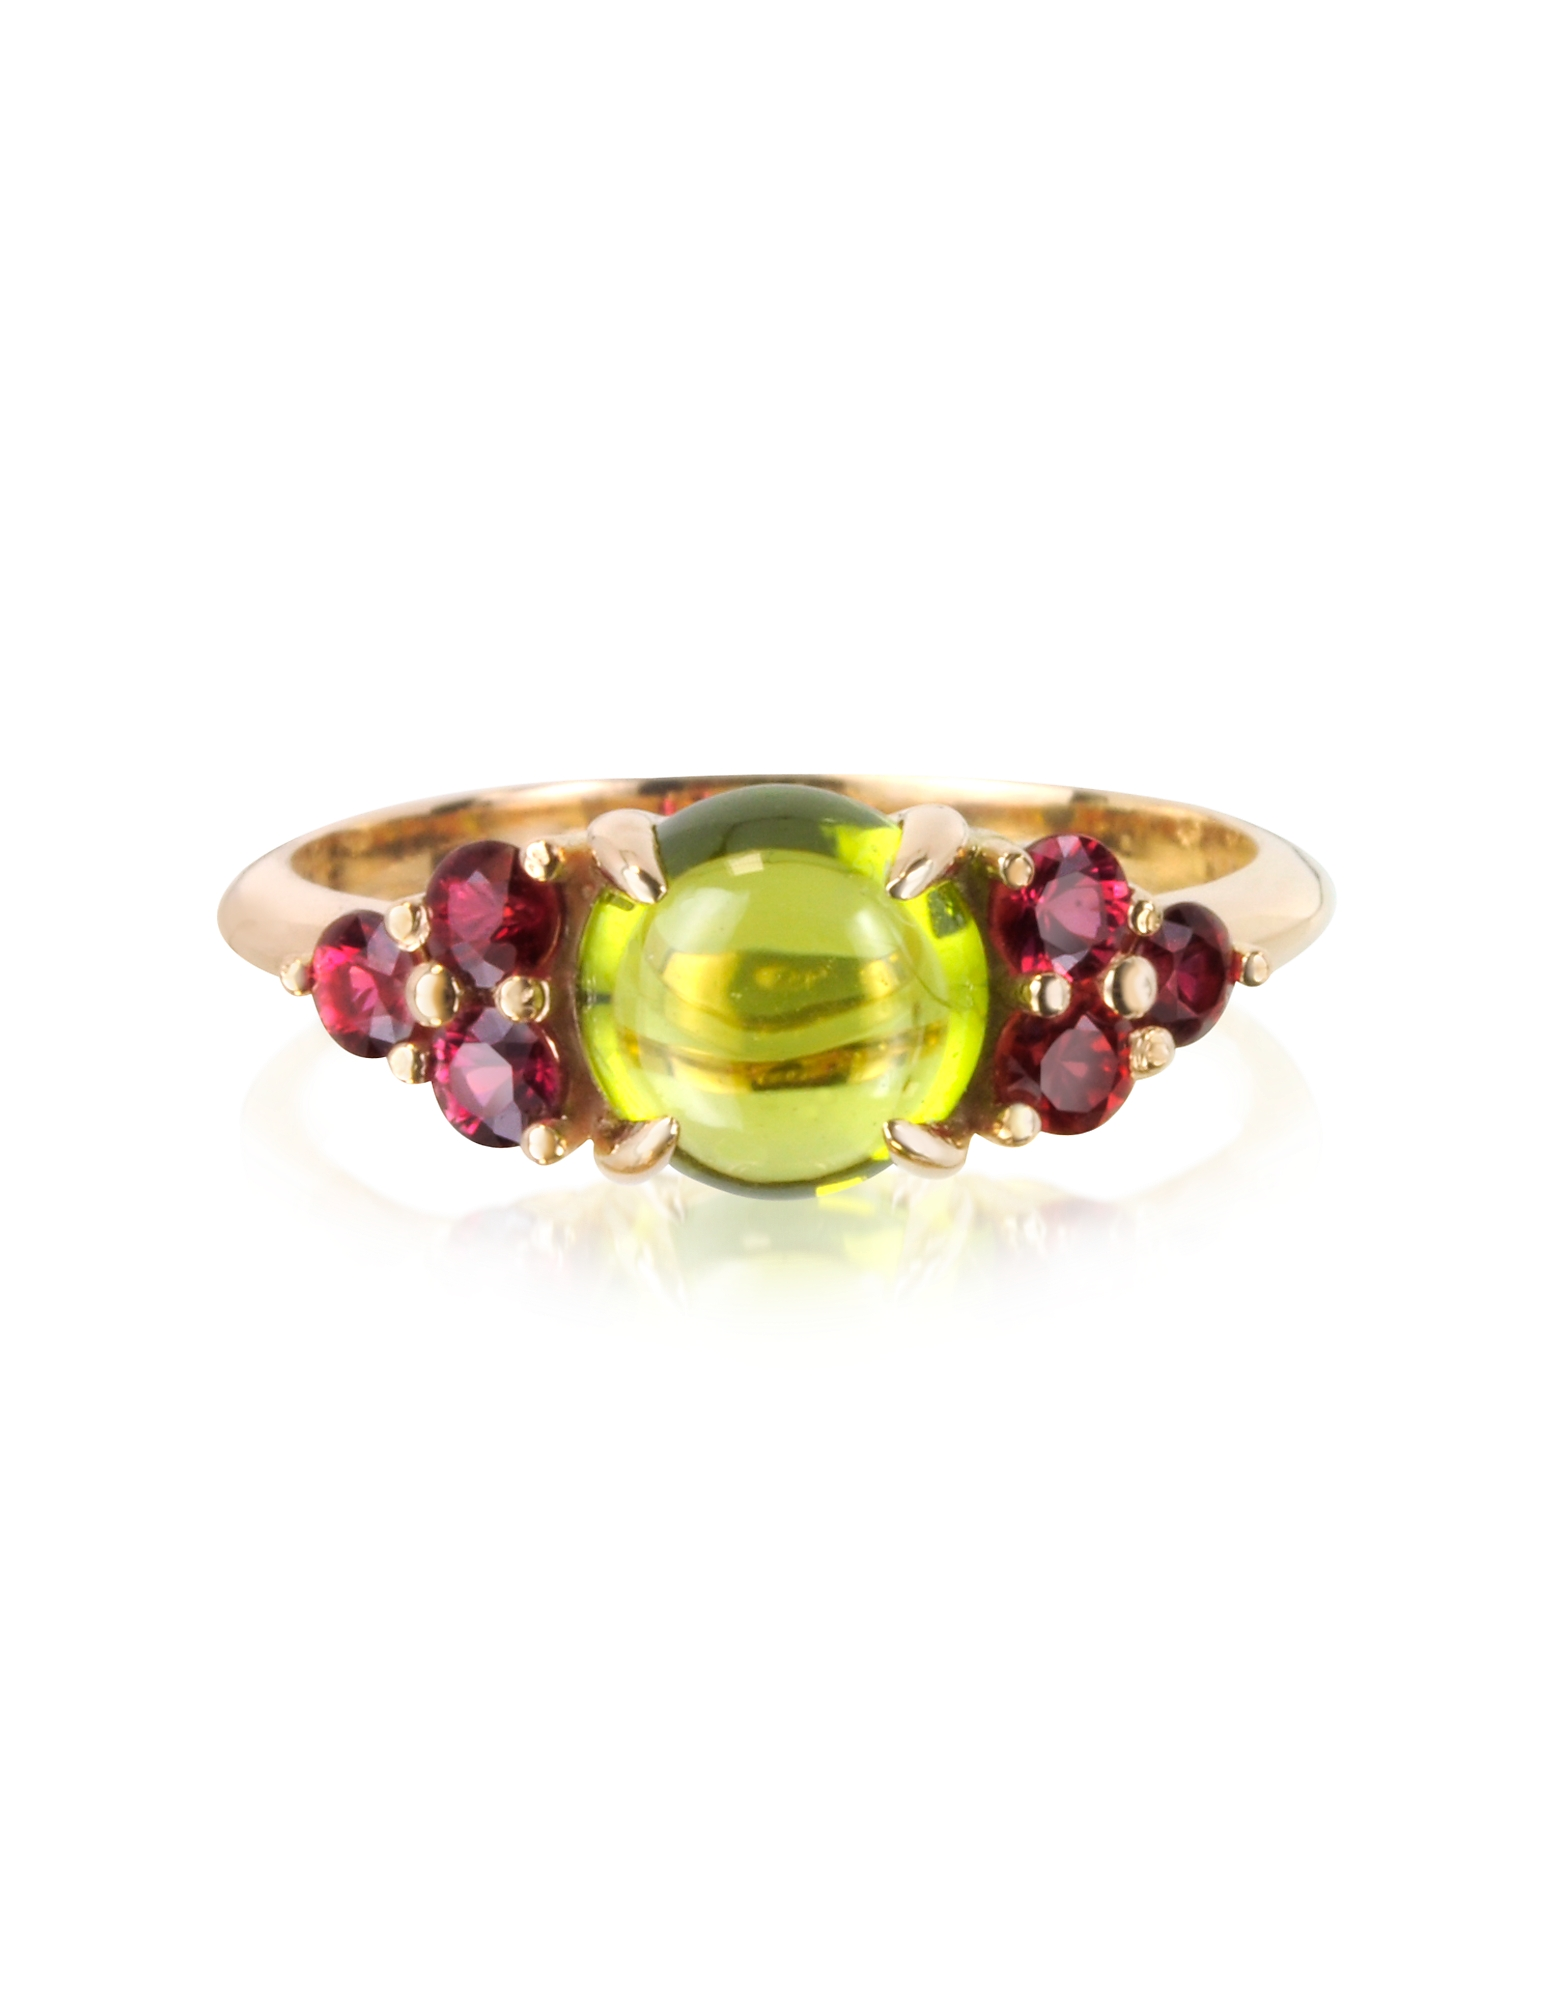 Image of Mia & Beverly Designer Rings, Red Sapphires and Peridot 18K Rose Gold Ring